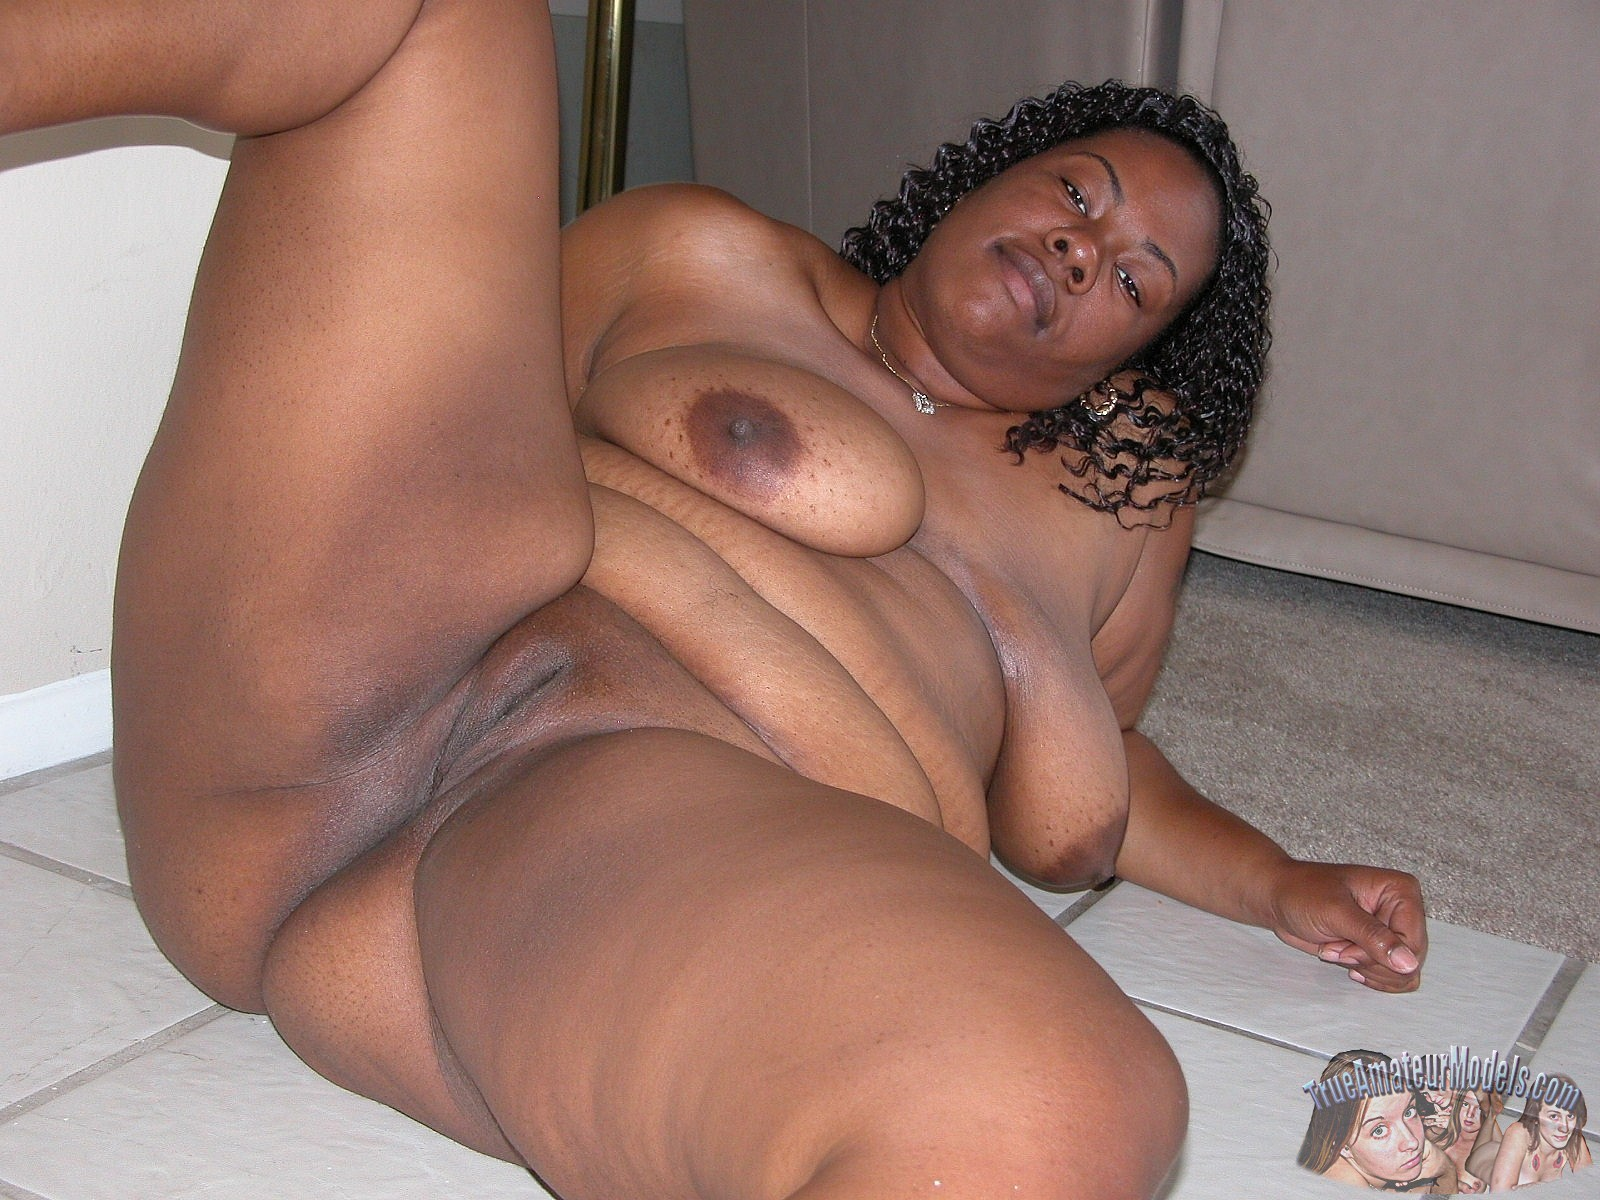 fat-sexy-ass-girl-afro-nude